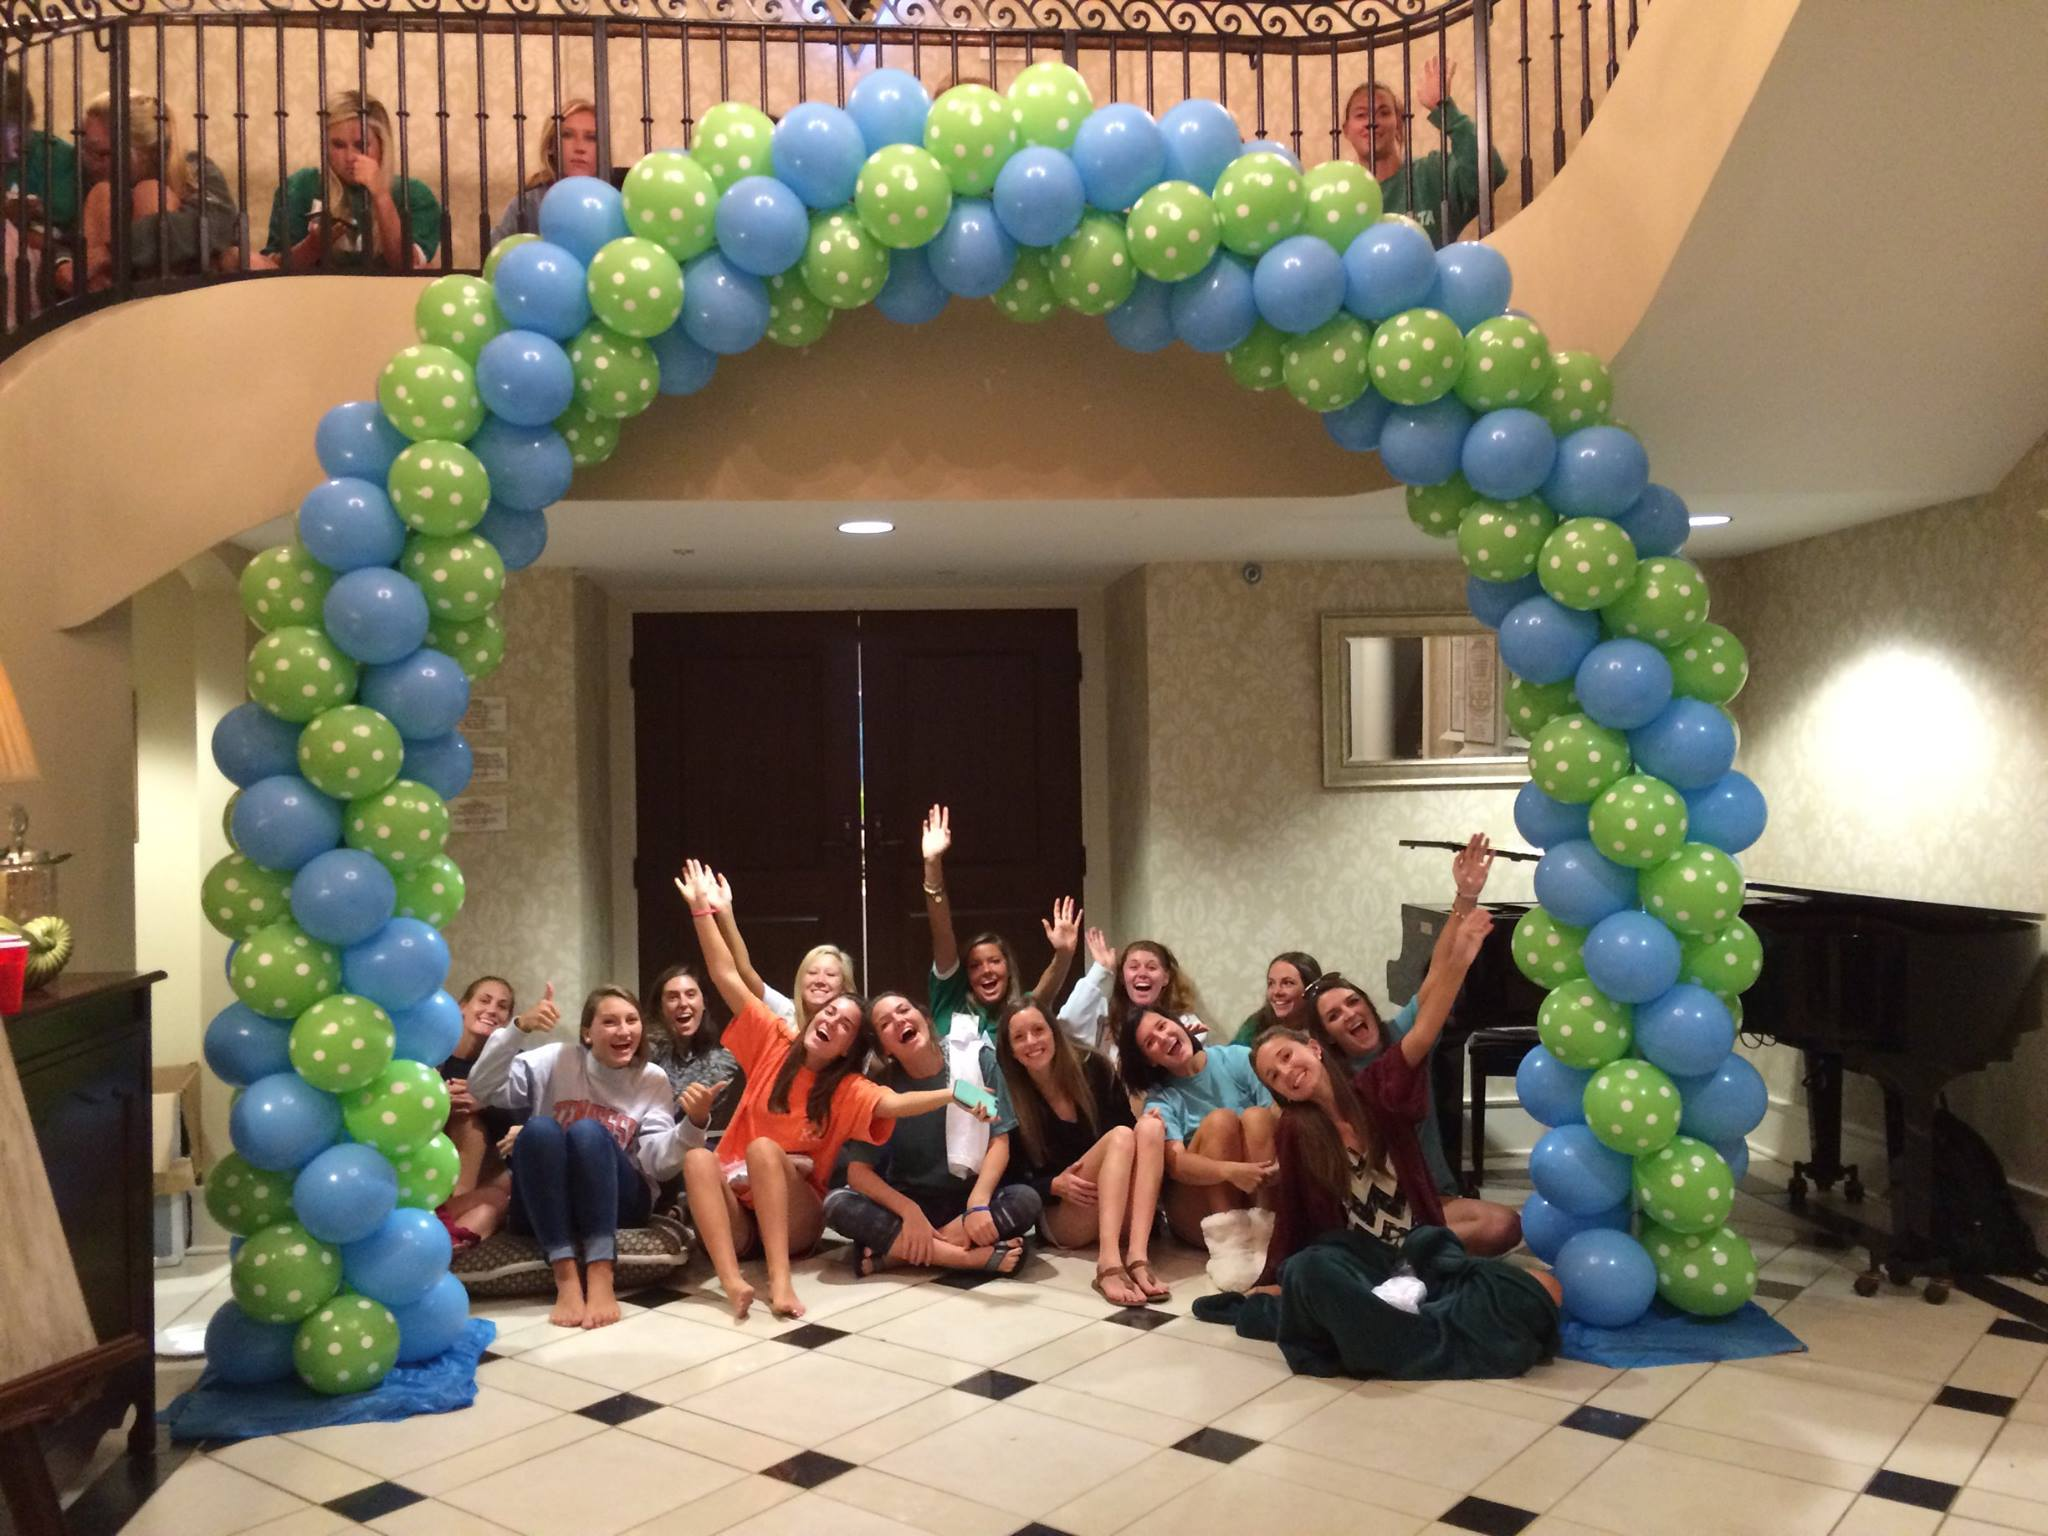 Events decoration at Kappa Delta sorority